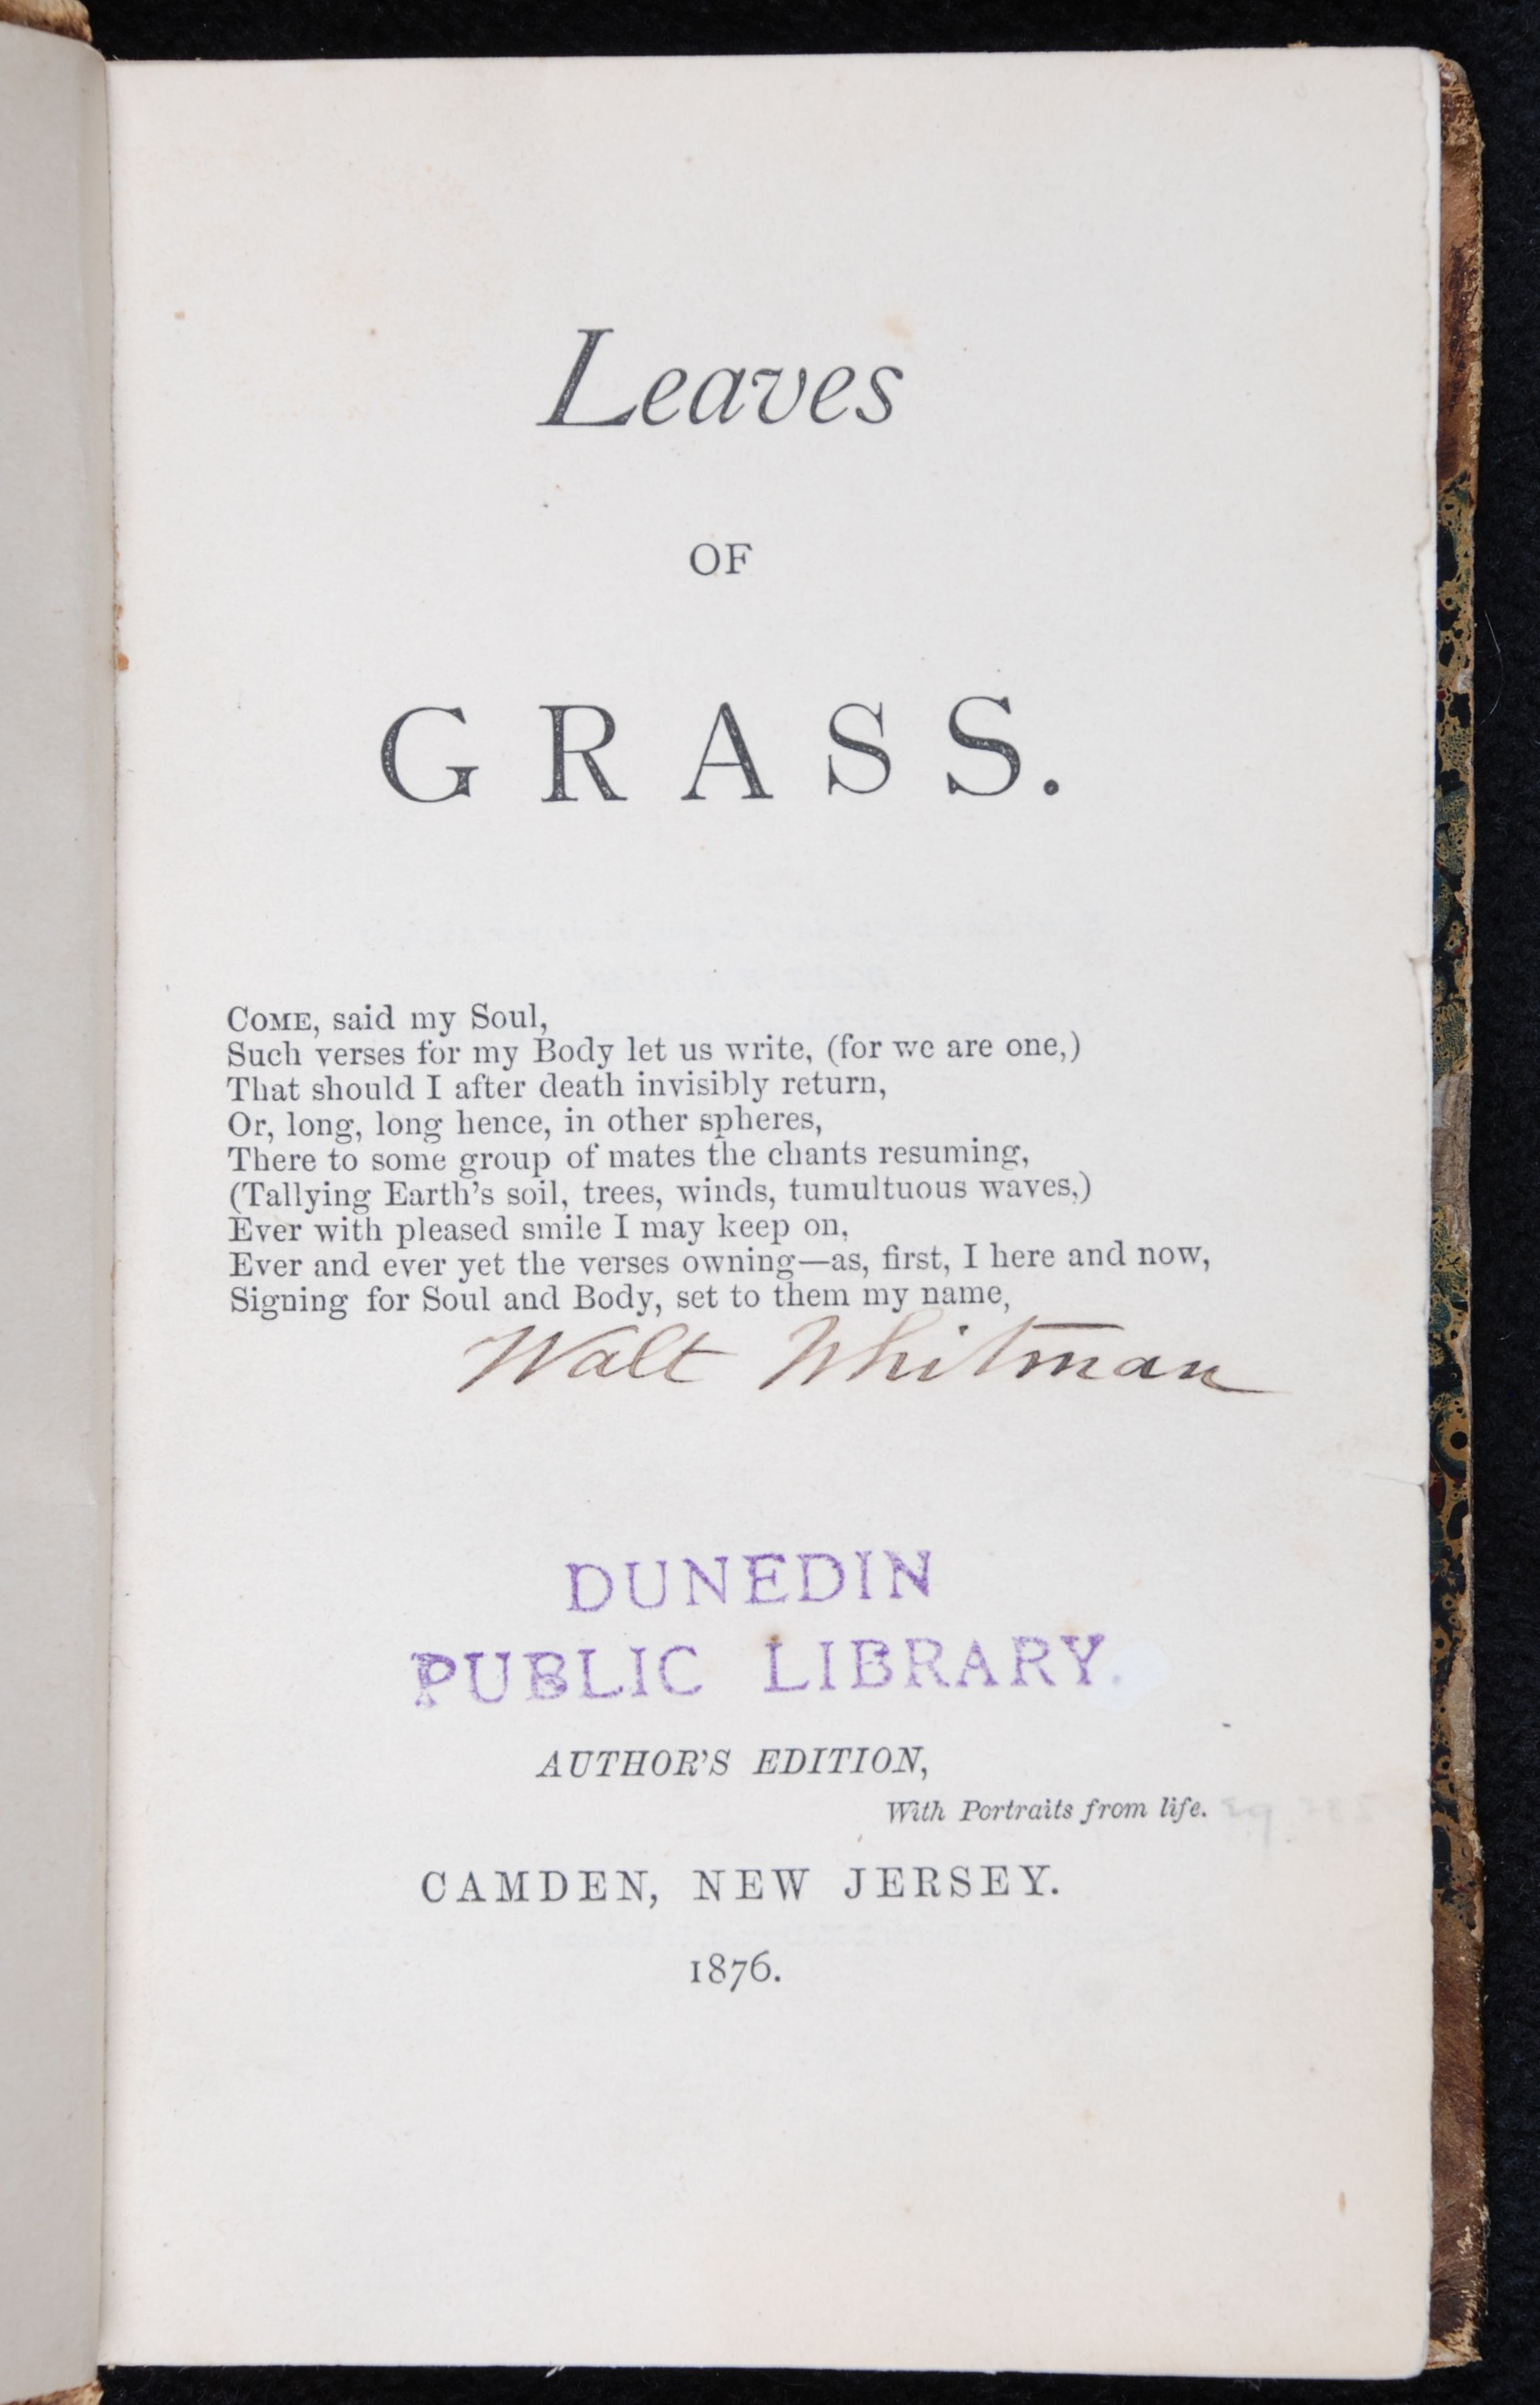 Walt Whitman. Leaves of Grass. Author's edition. Camden, N.J., 1876.